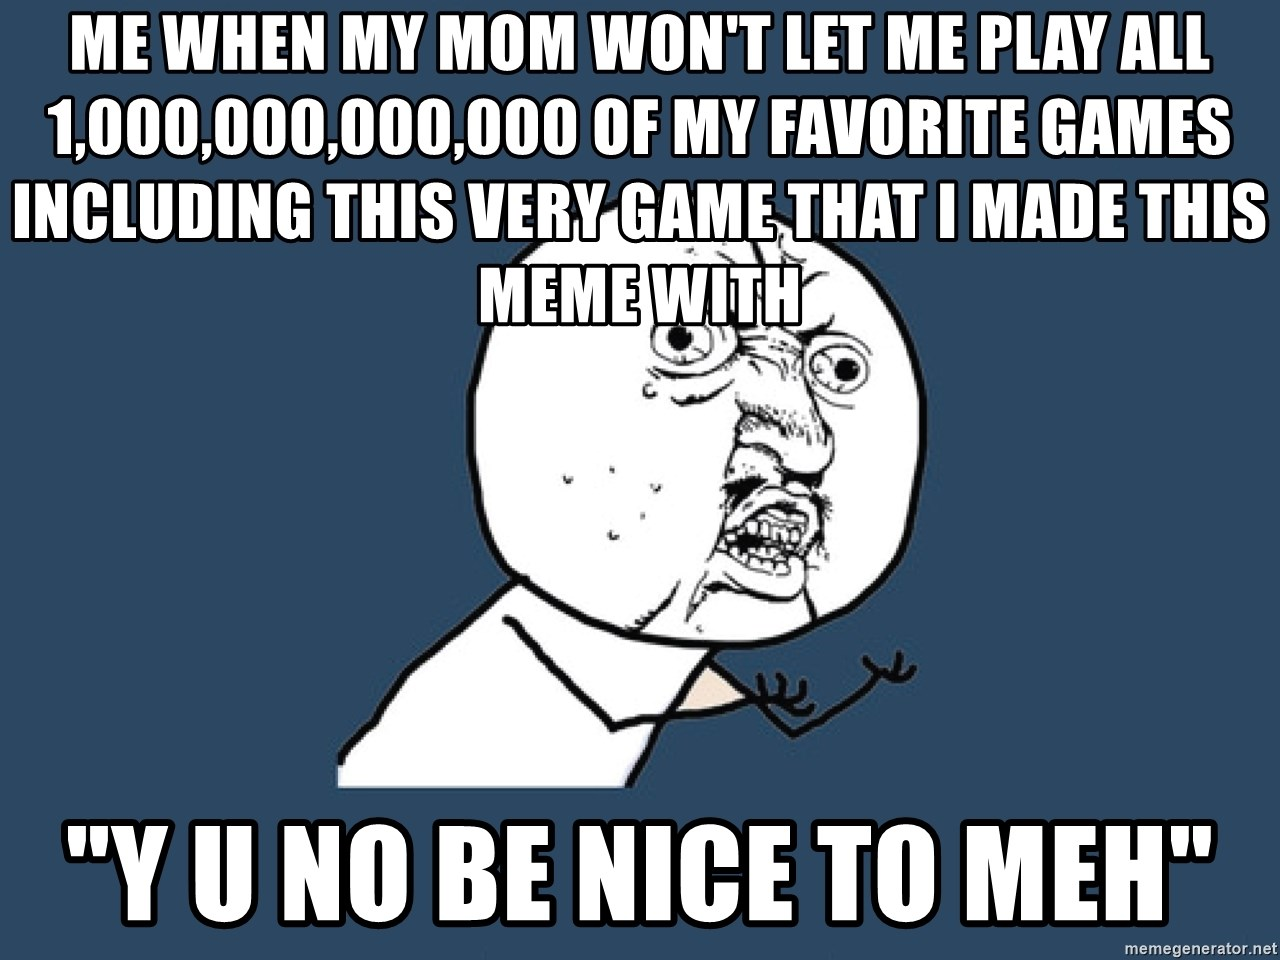 """Y U No - Me when my mom won't let me play all 1,000,000,000,000 of my favorite games including this very game that I made this meme with """"Y U NO BE NICE TO MEH"""""""